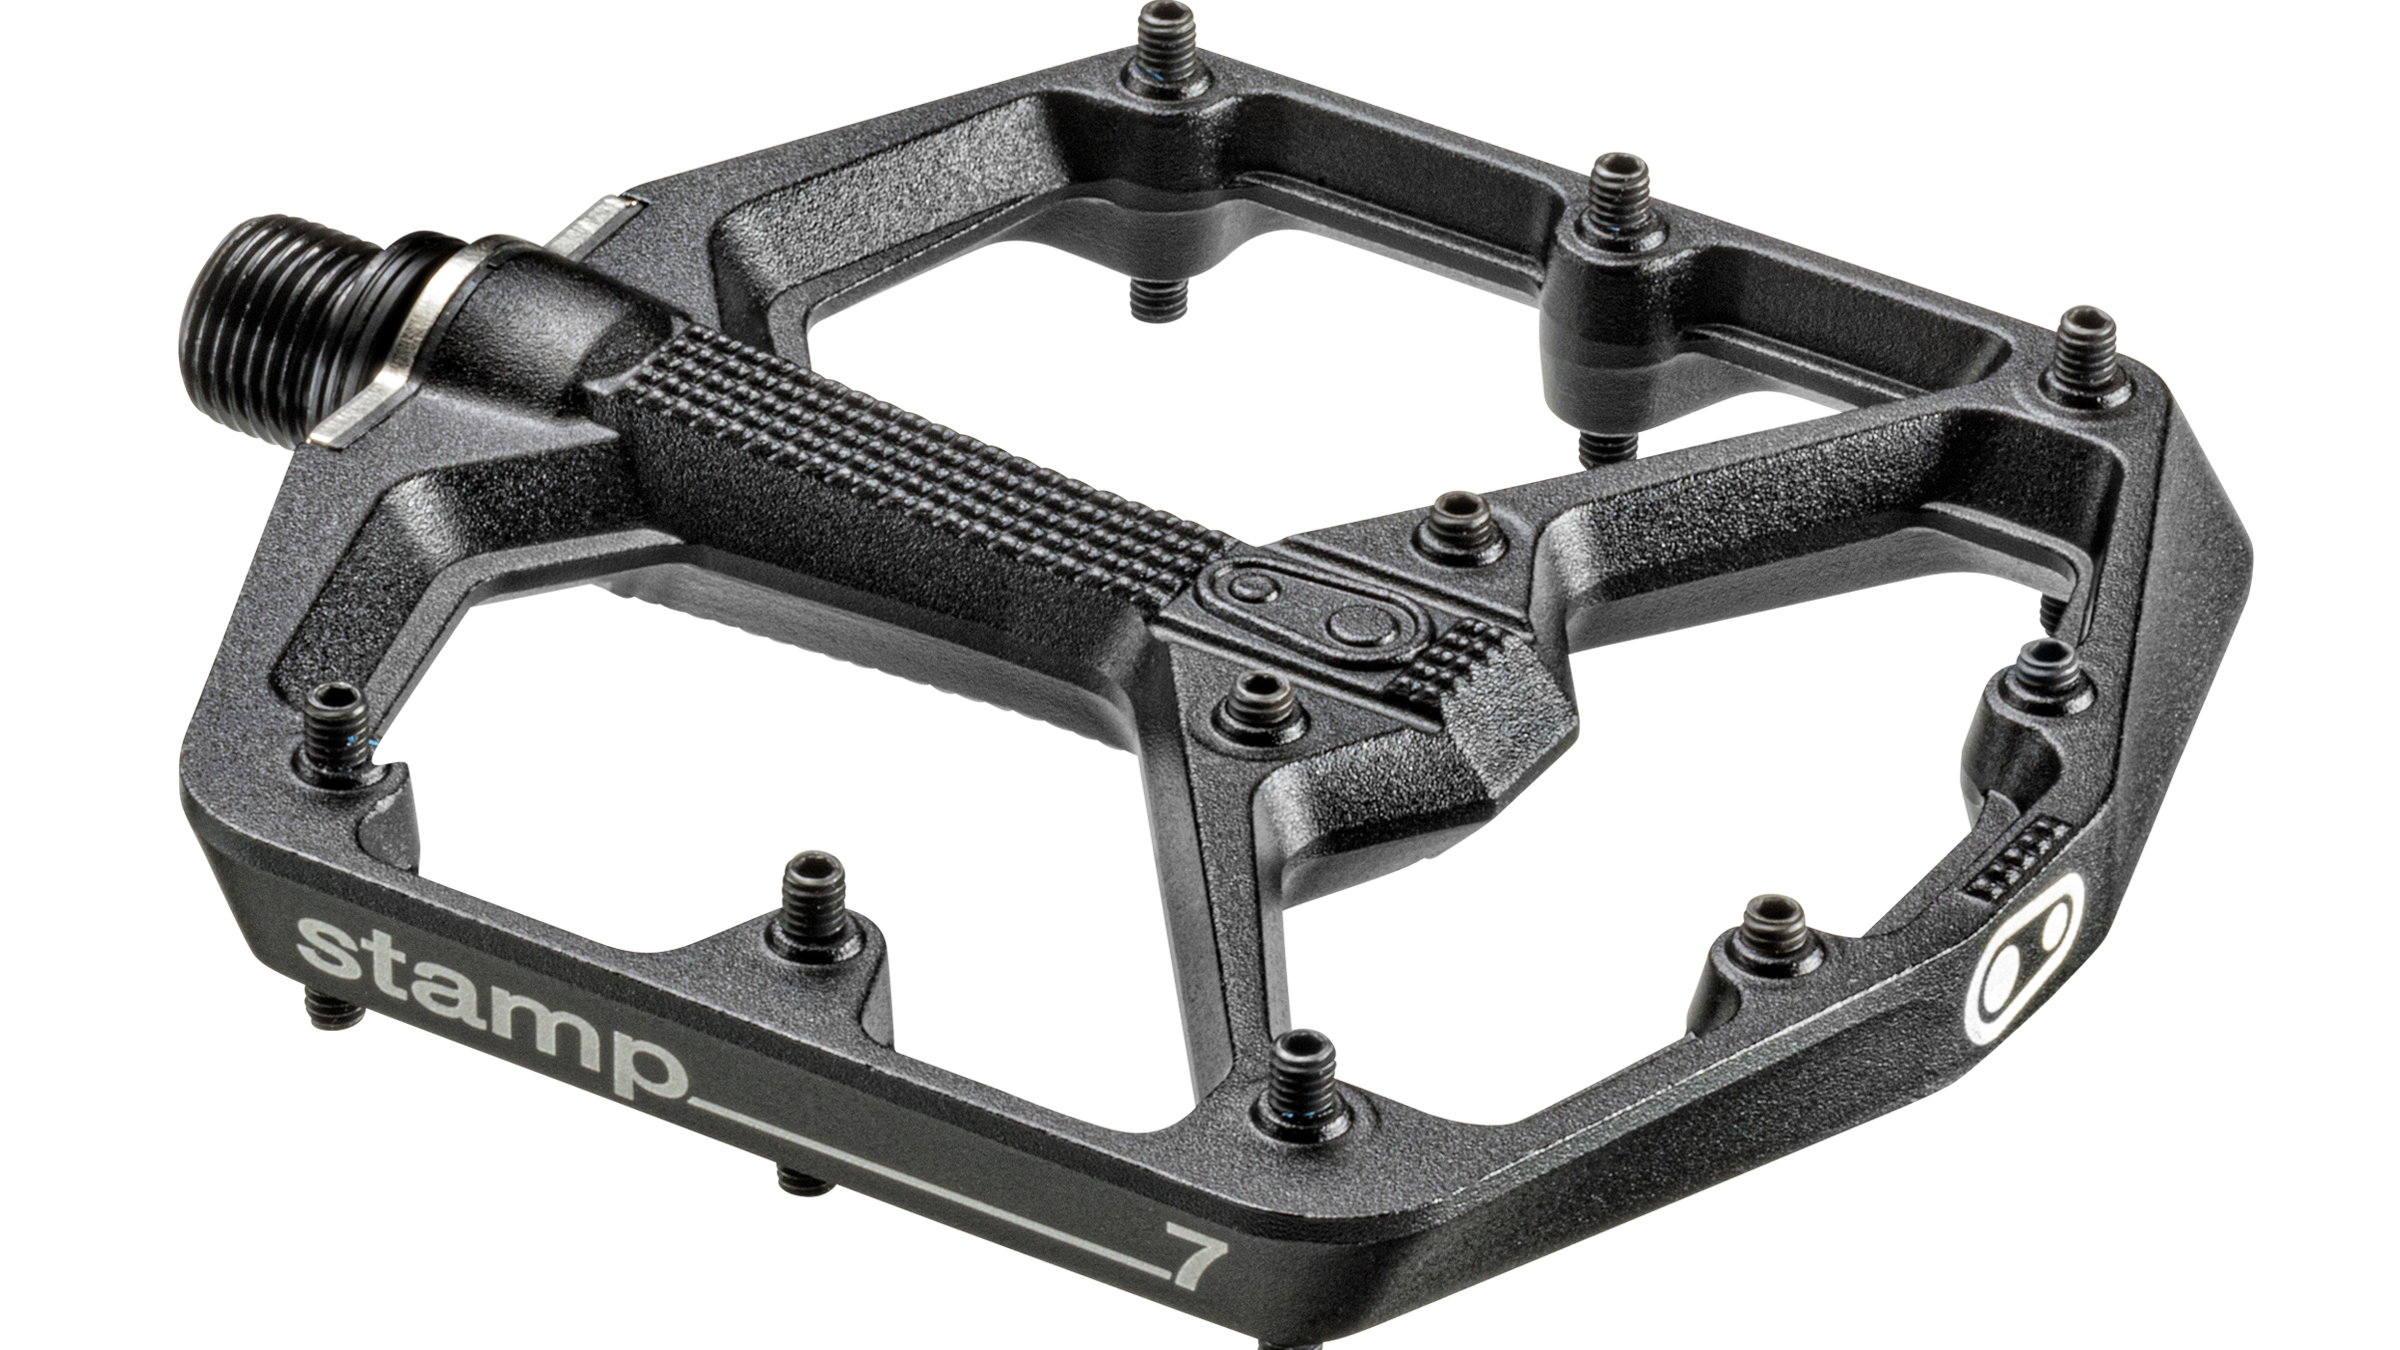 Crank Brothers Stamp 2 Large Pedals Black